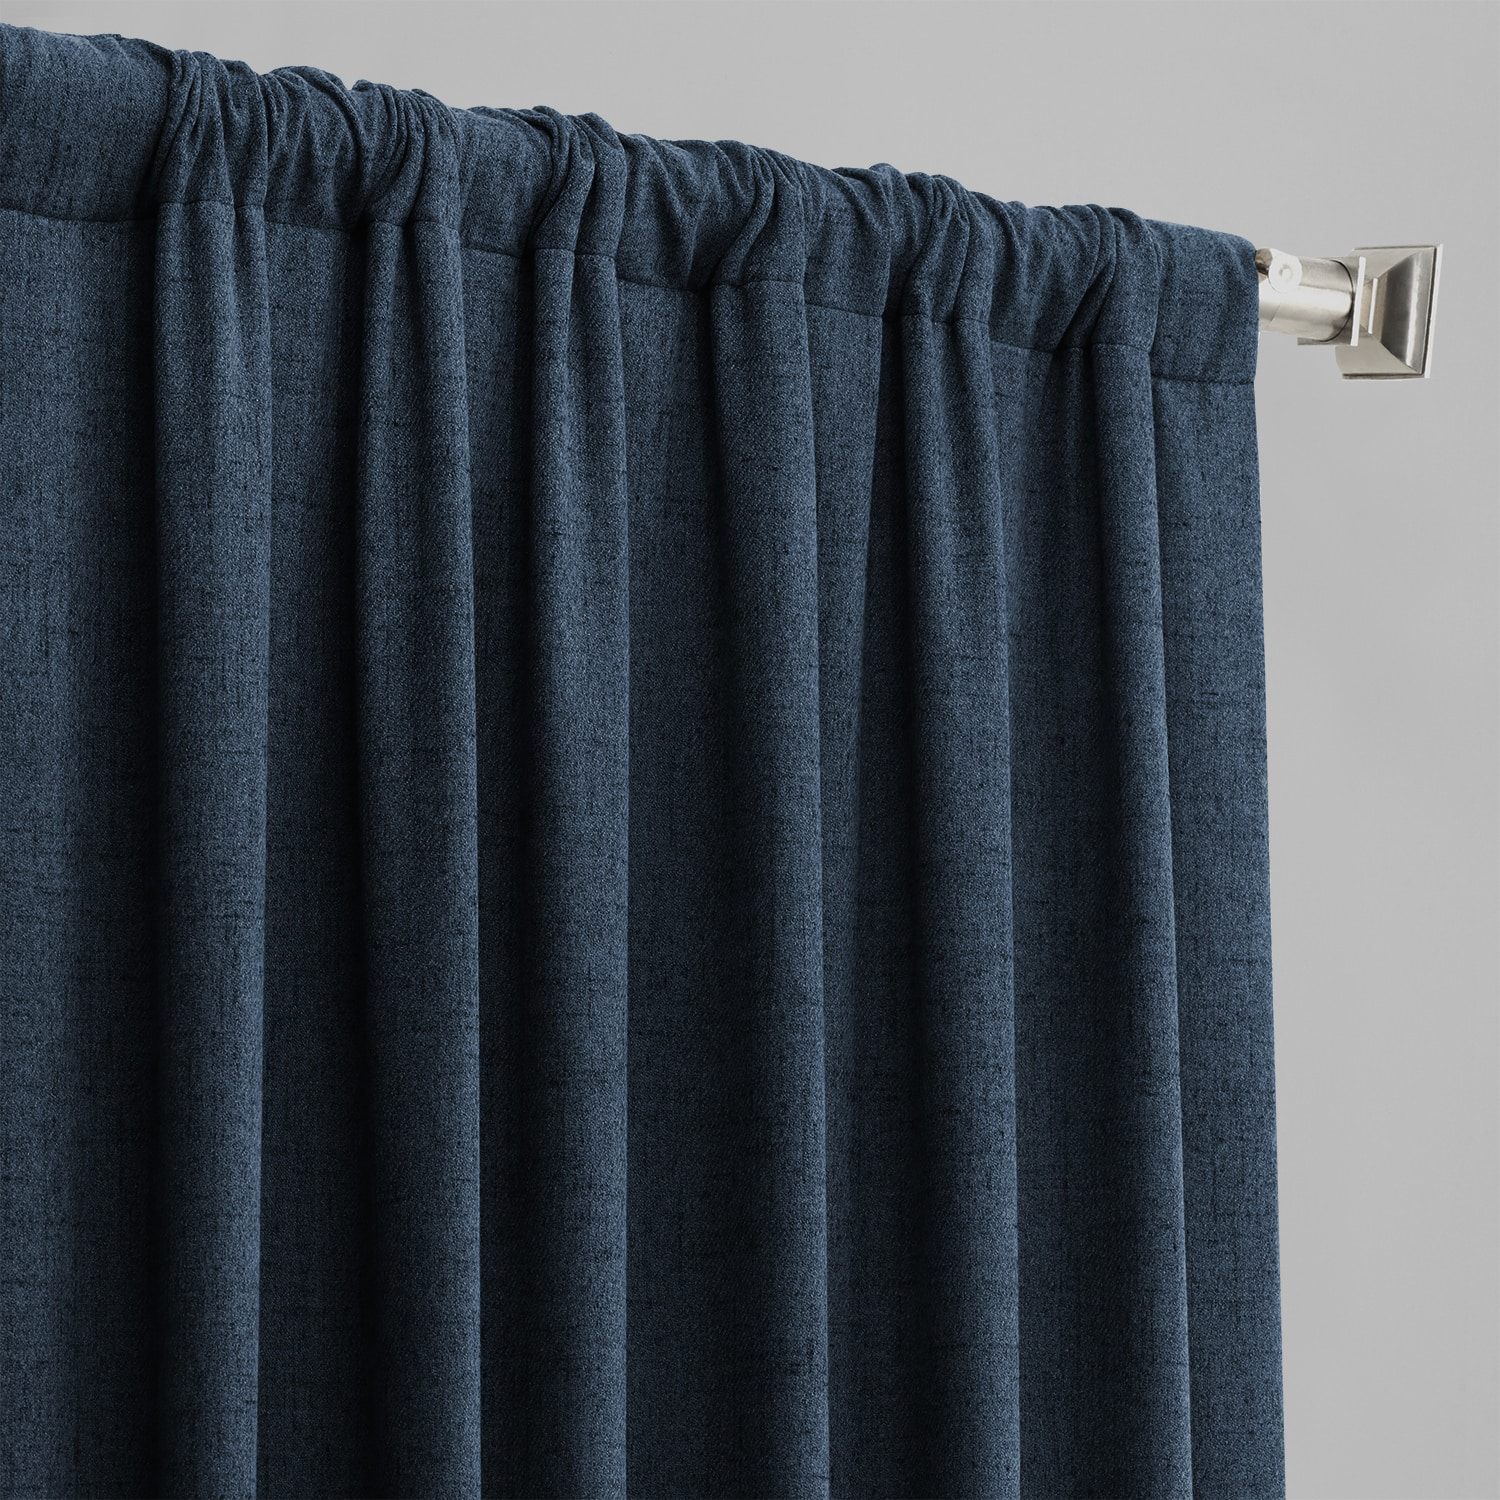 Dark Denim Blue Thermal Room Darkening Heathered Italian Woolen Weave Curtain